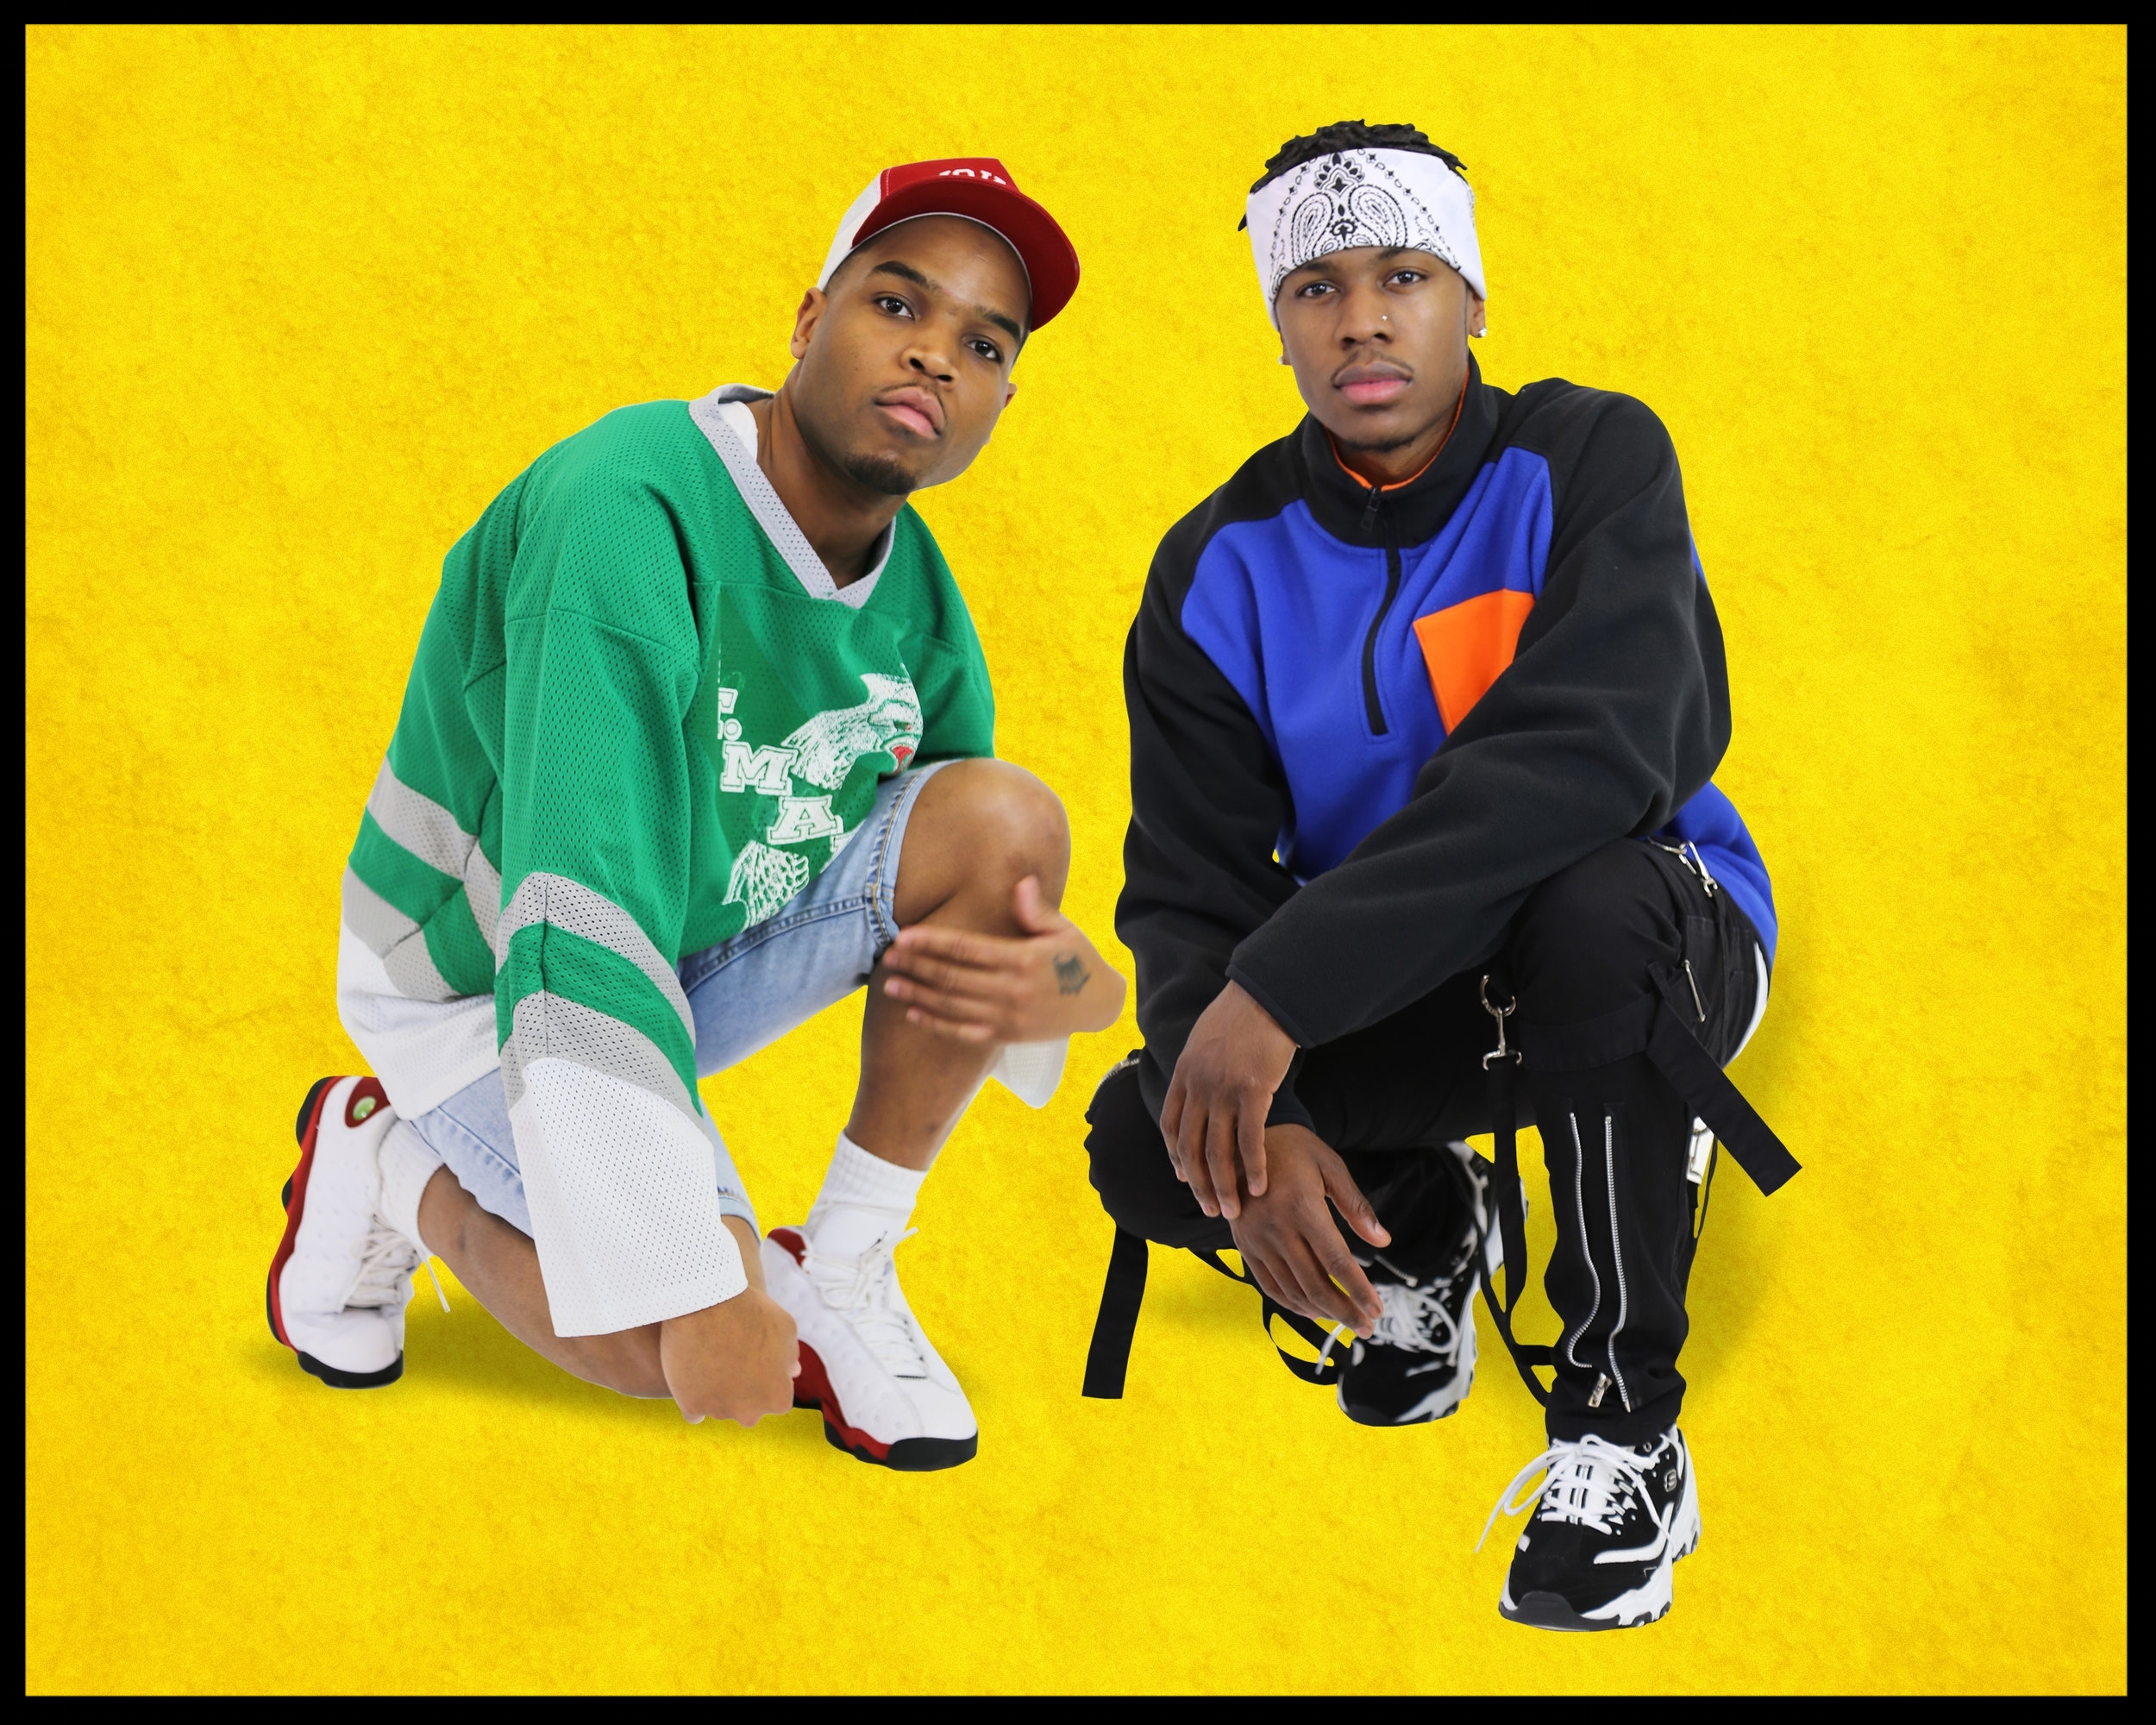 JGE Retro is a buzzing music group on the rise in St. Louis, Missouri. This is a photo of two recording artist who make up the group. From left to right: Shad and Lil' Shawn.